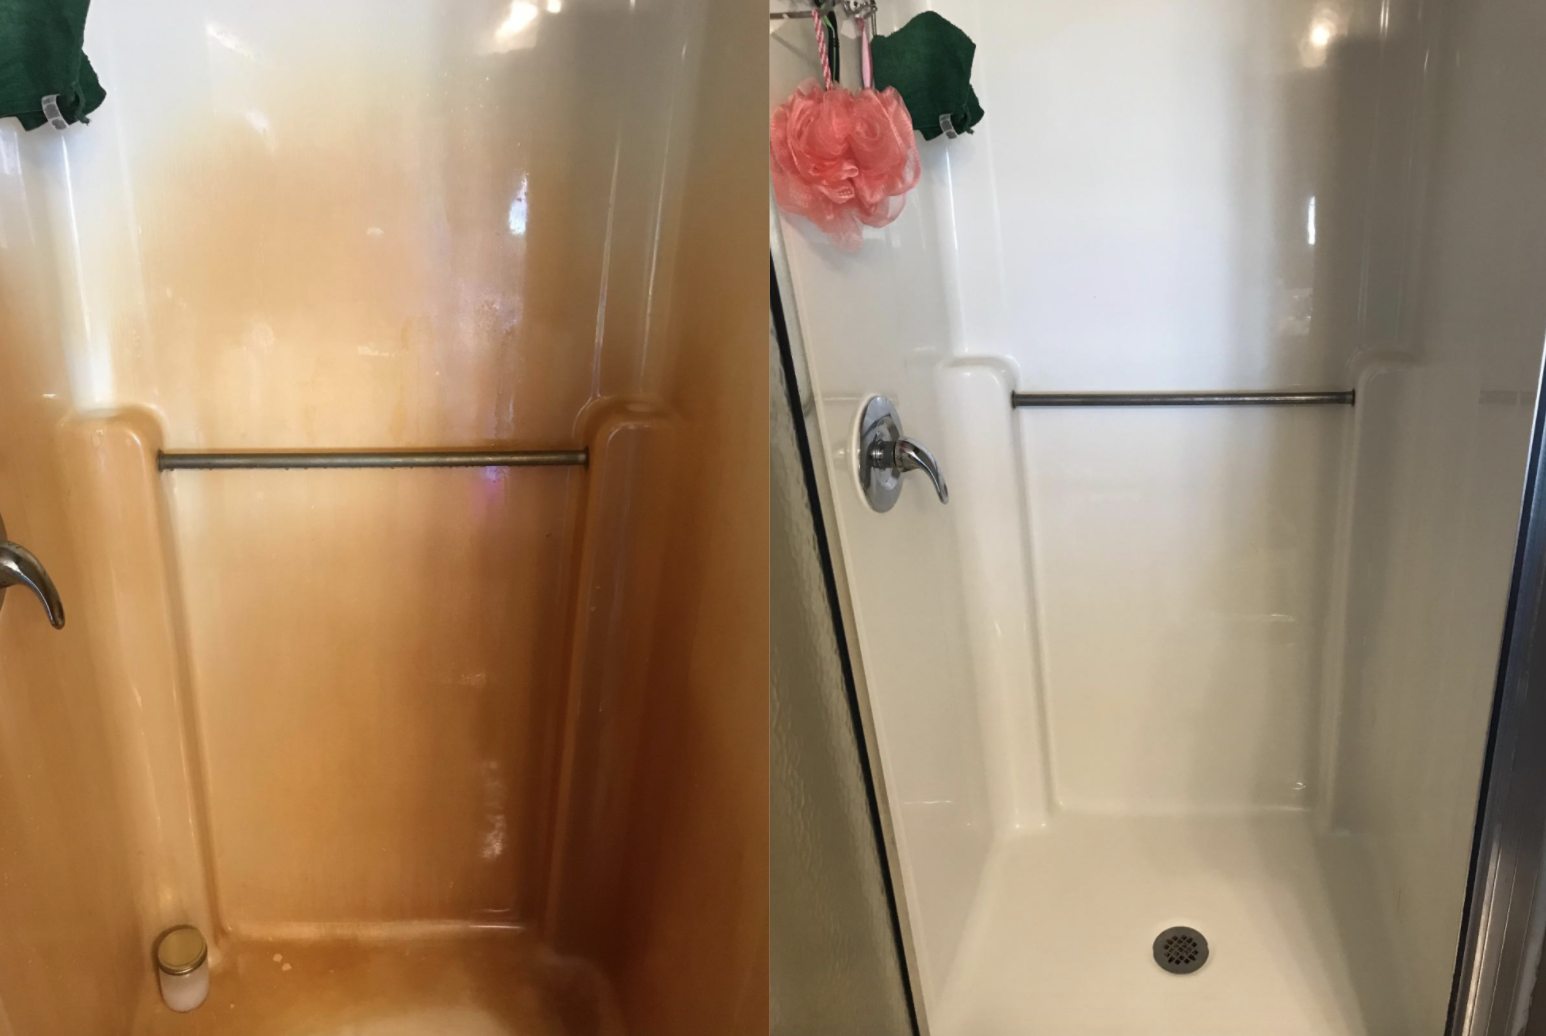 A customer review photo showing the results of the rust remover on their shower